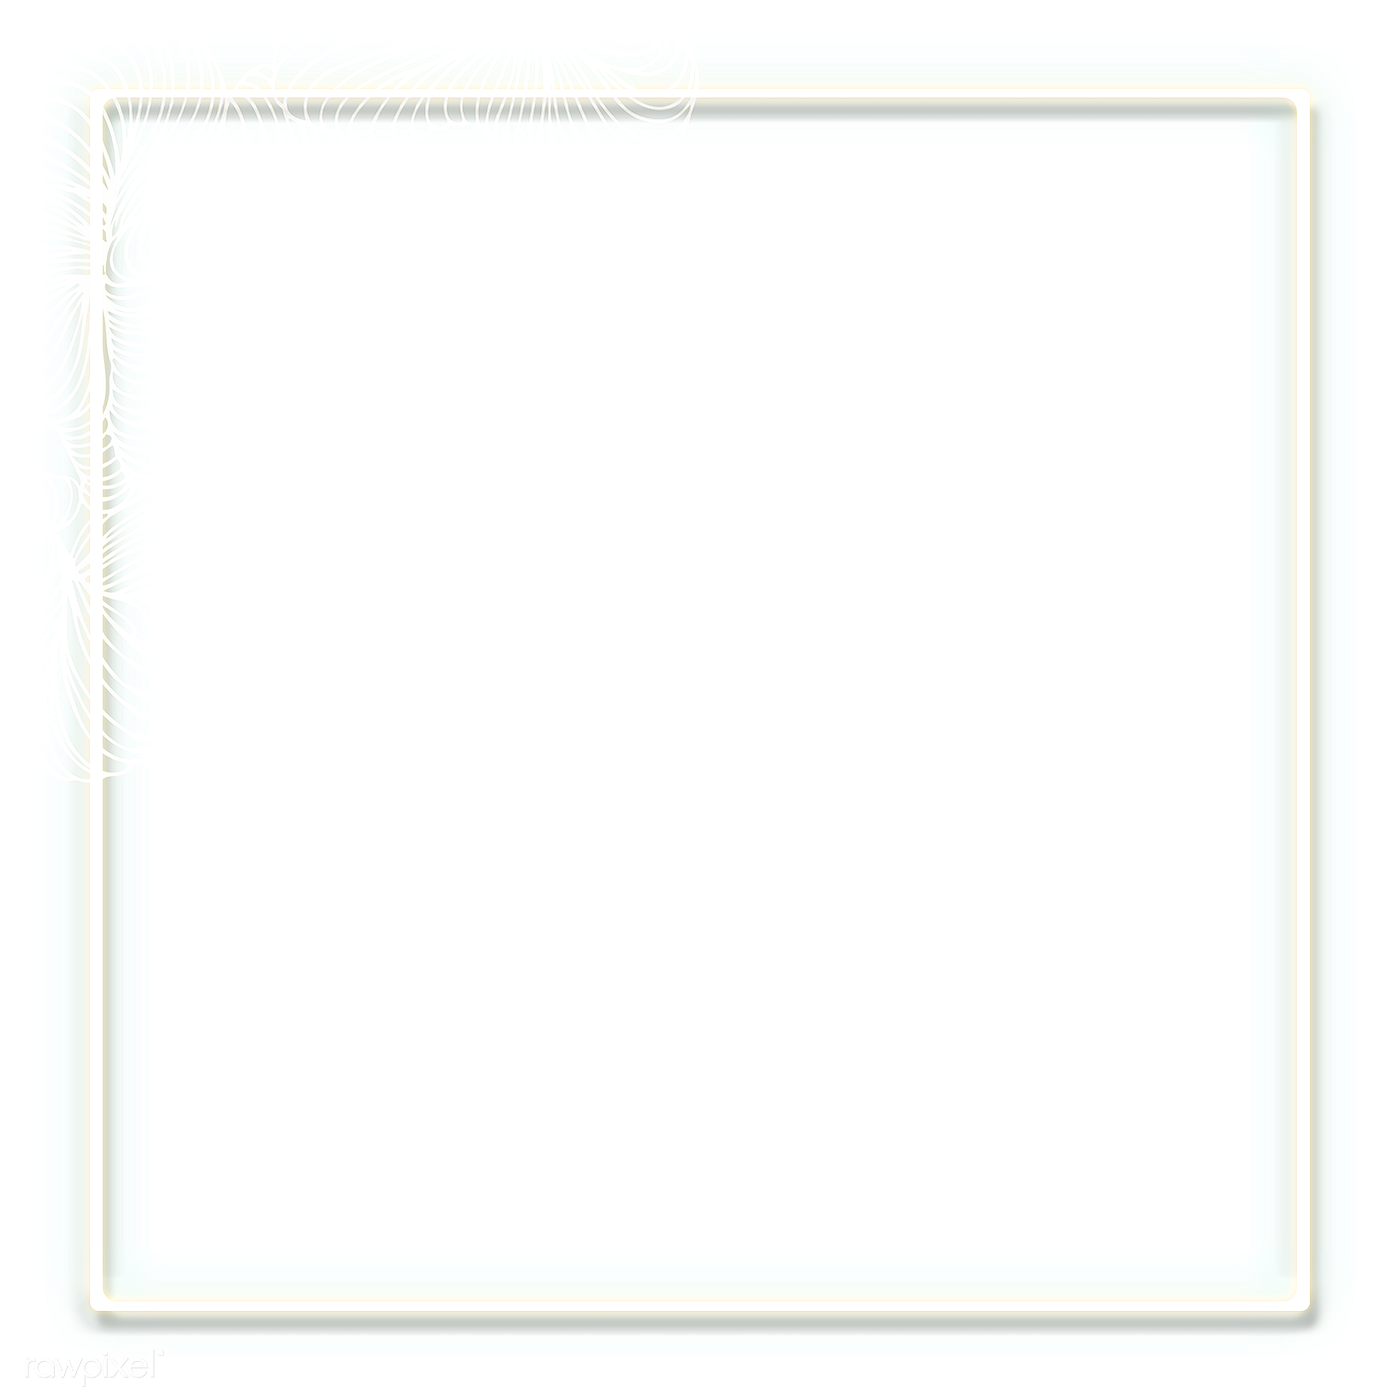 Neon white frame png | Royalty free stock transparent png ...